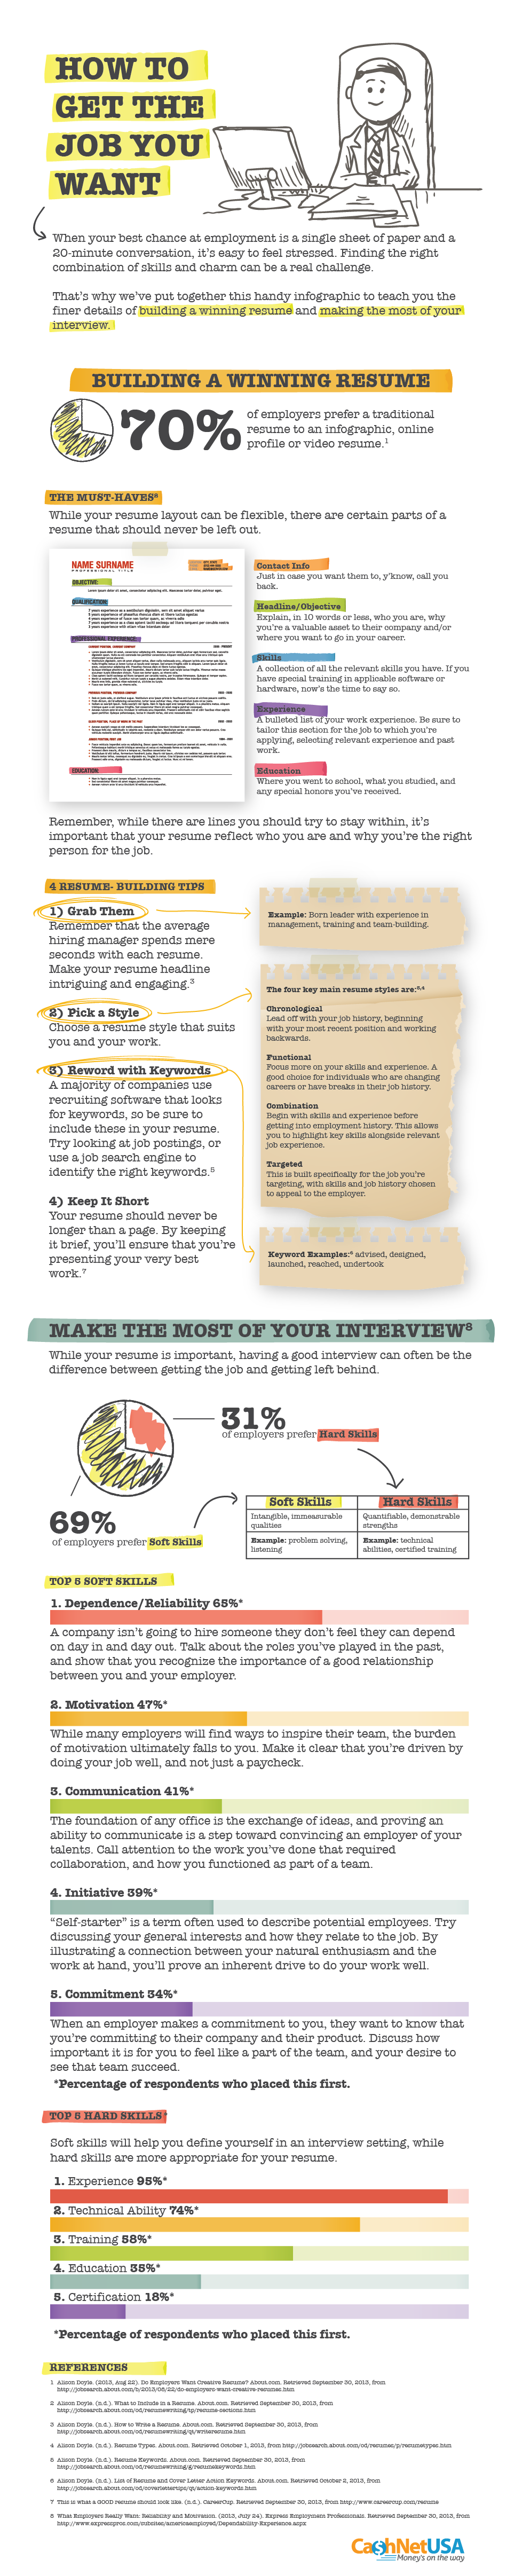 How to get the dream job- infographic